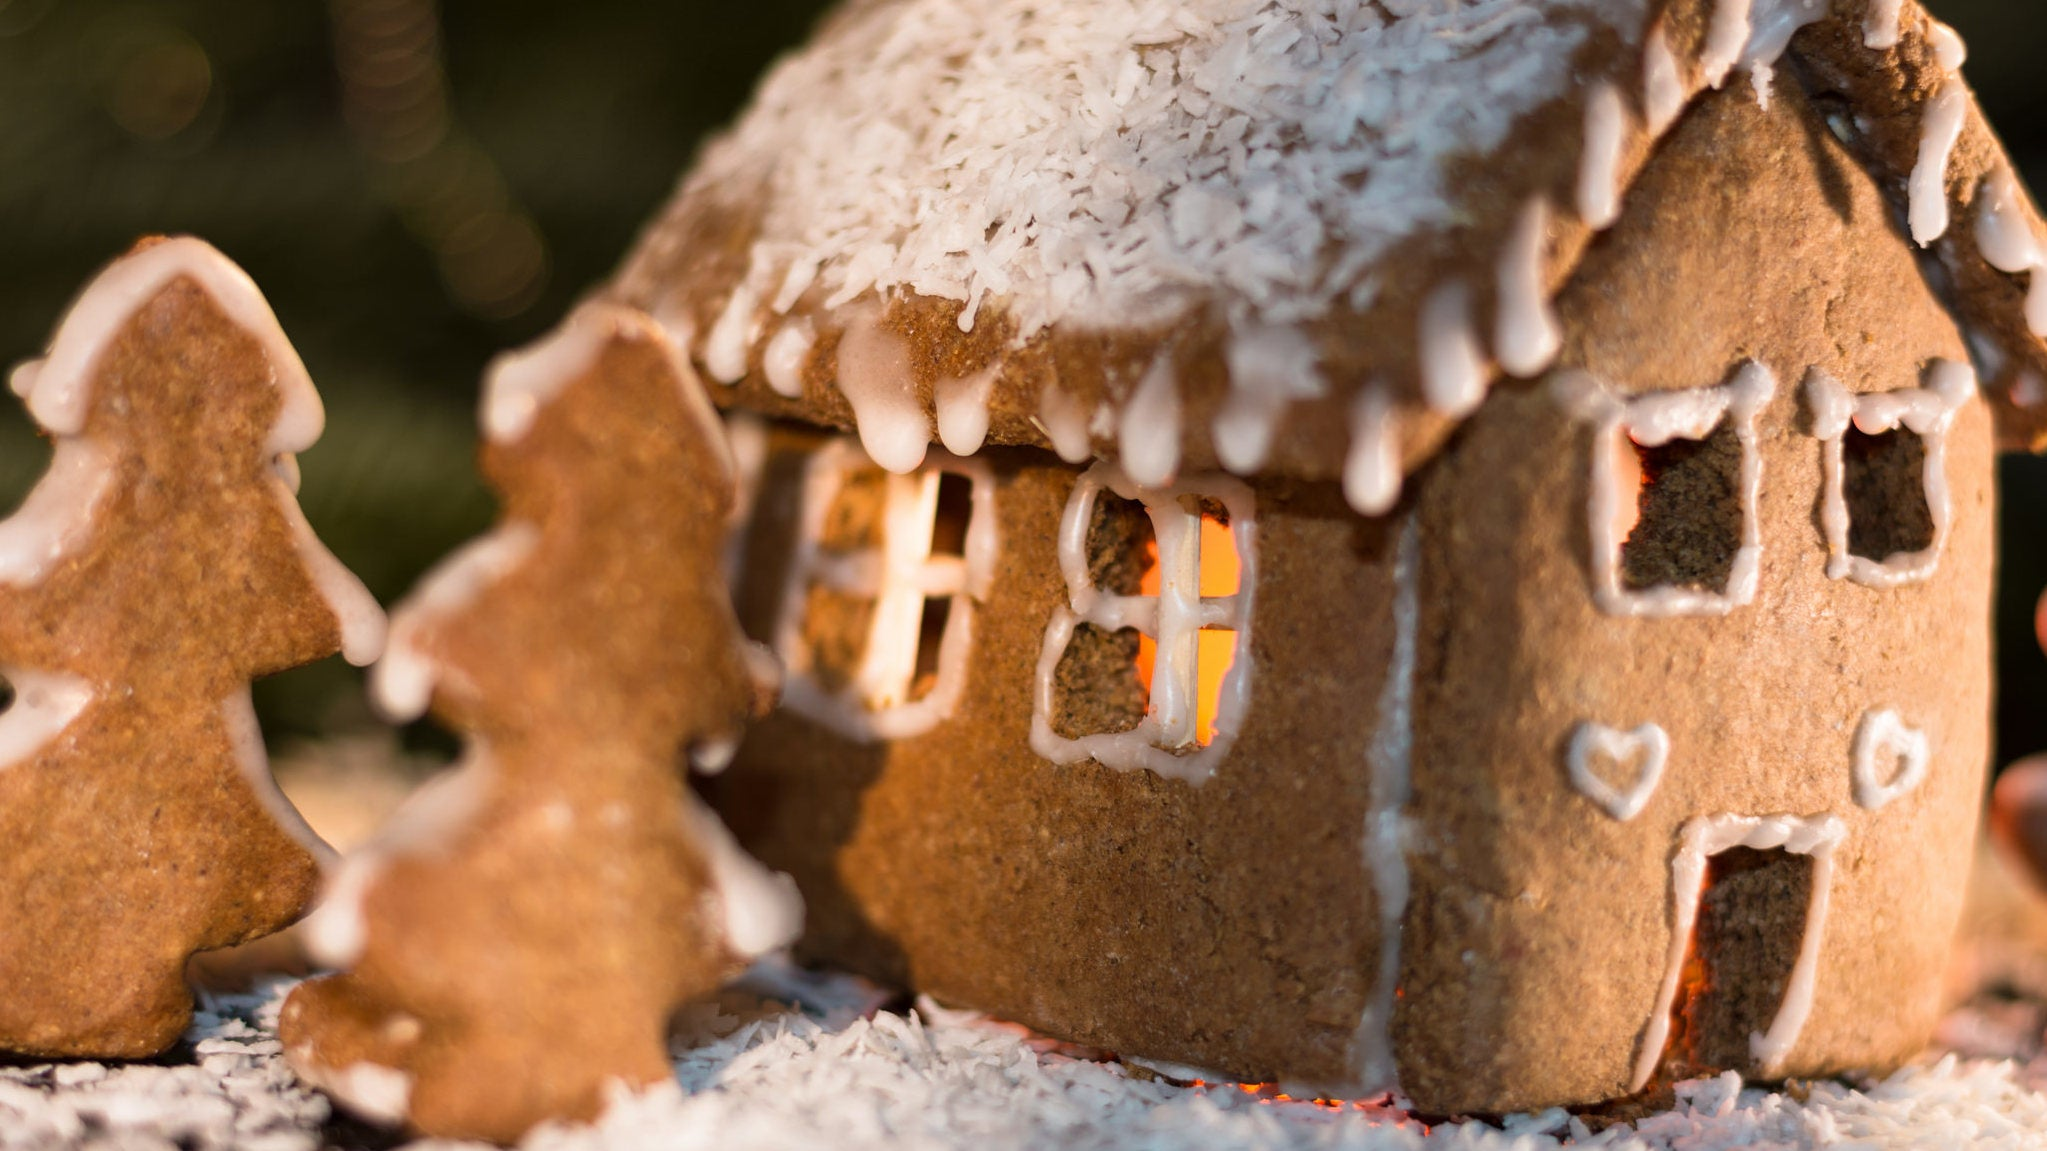 How To Build The Perfect Gingerbread House